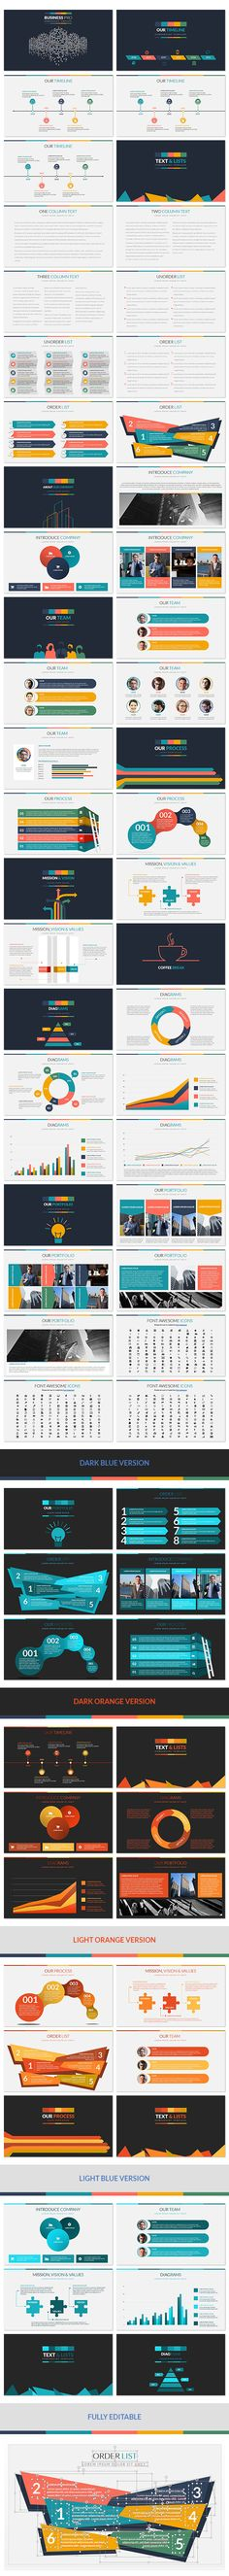 Business Pro - PowerPoint Professional Business Template. Download here: http://graphicriver.net/item/business-pro-powerpoint-professional-business-template/16514514?ref=ksioks